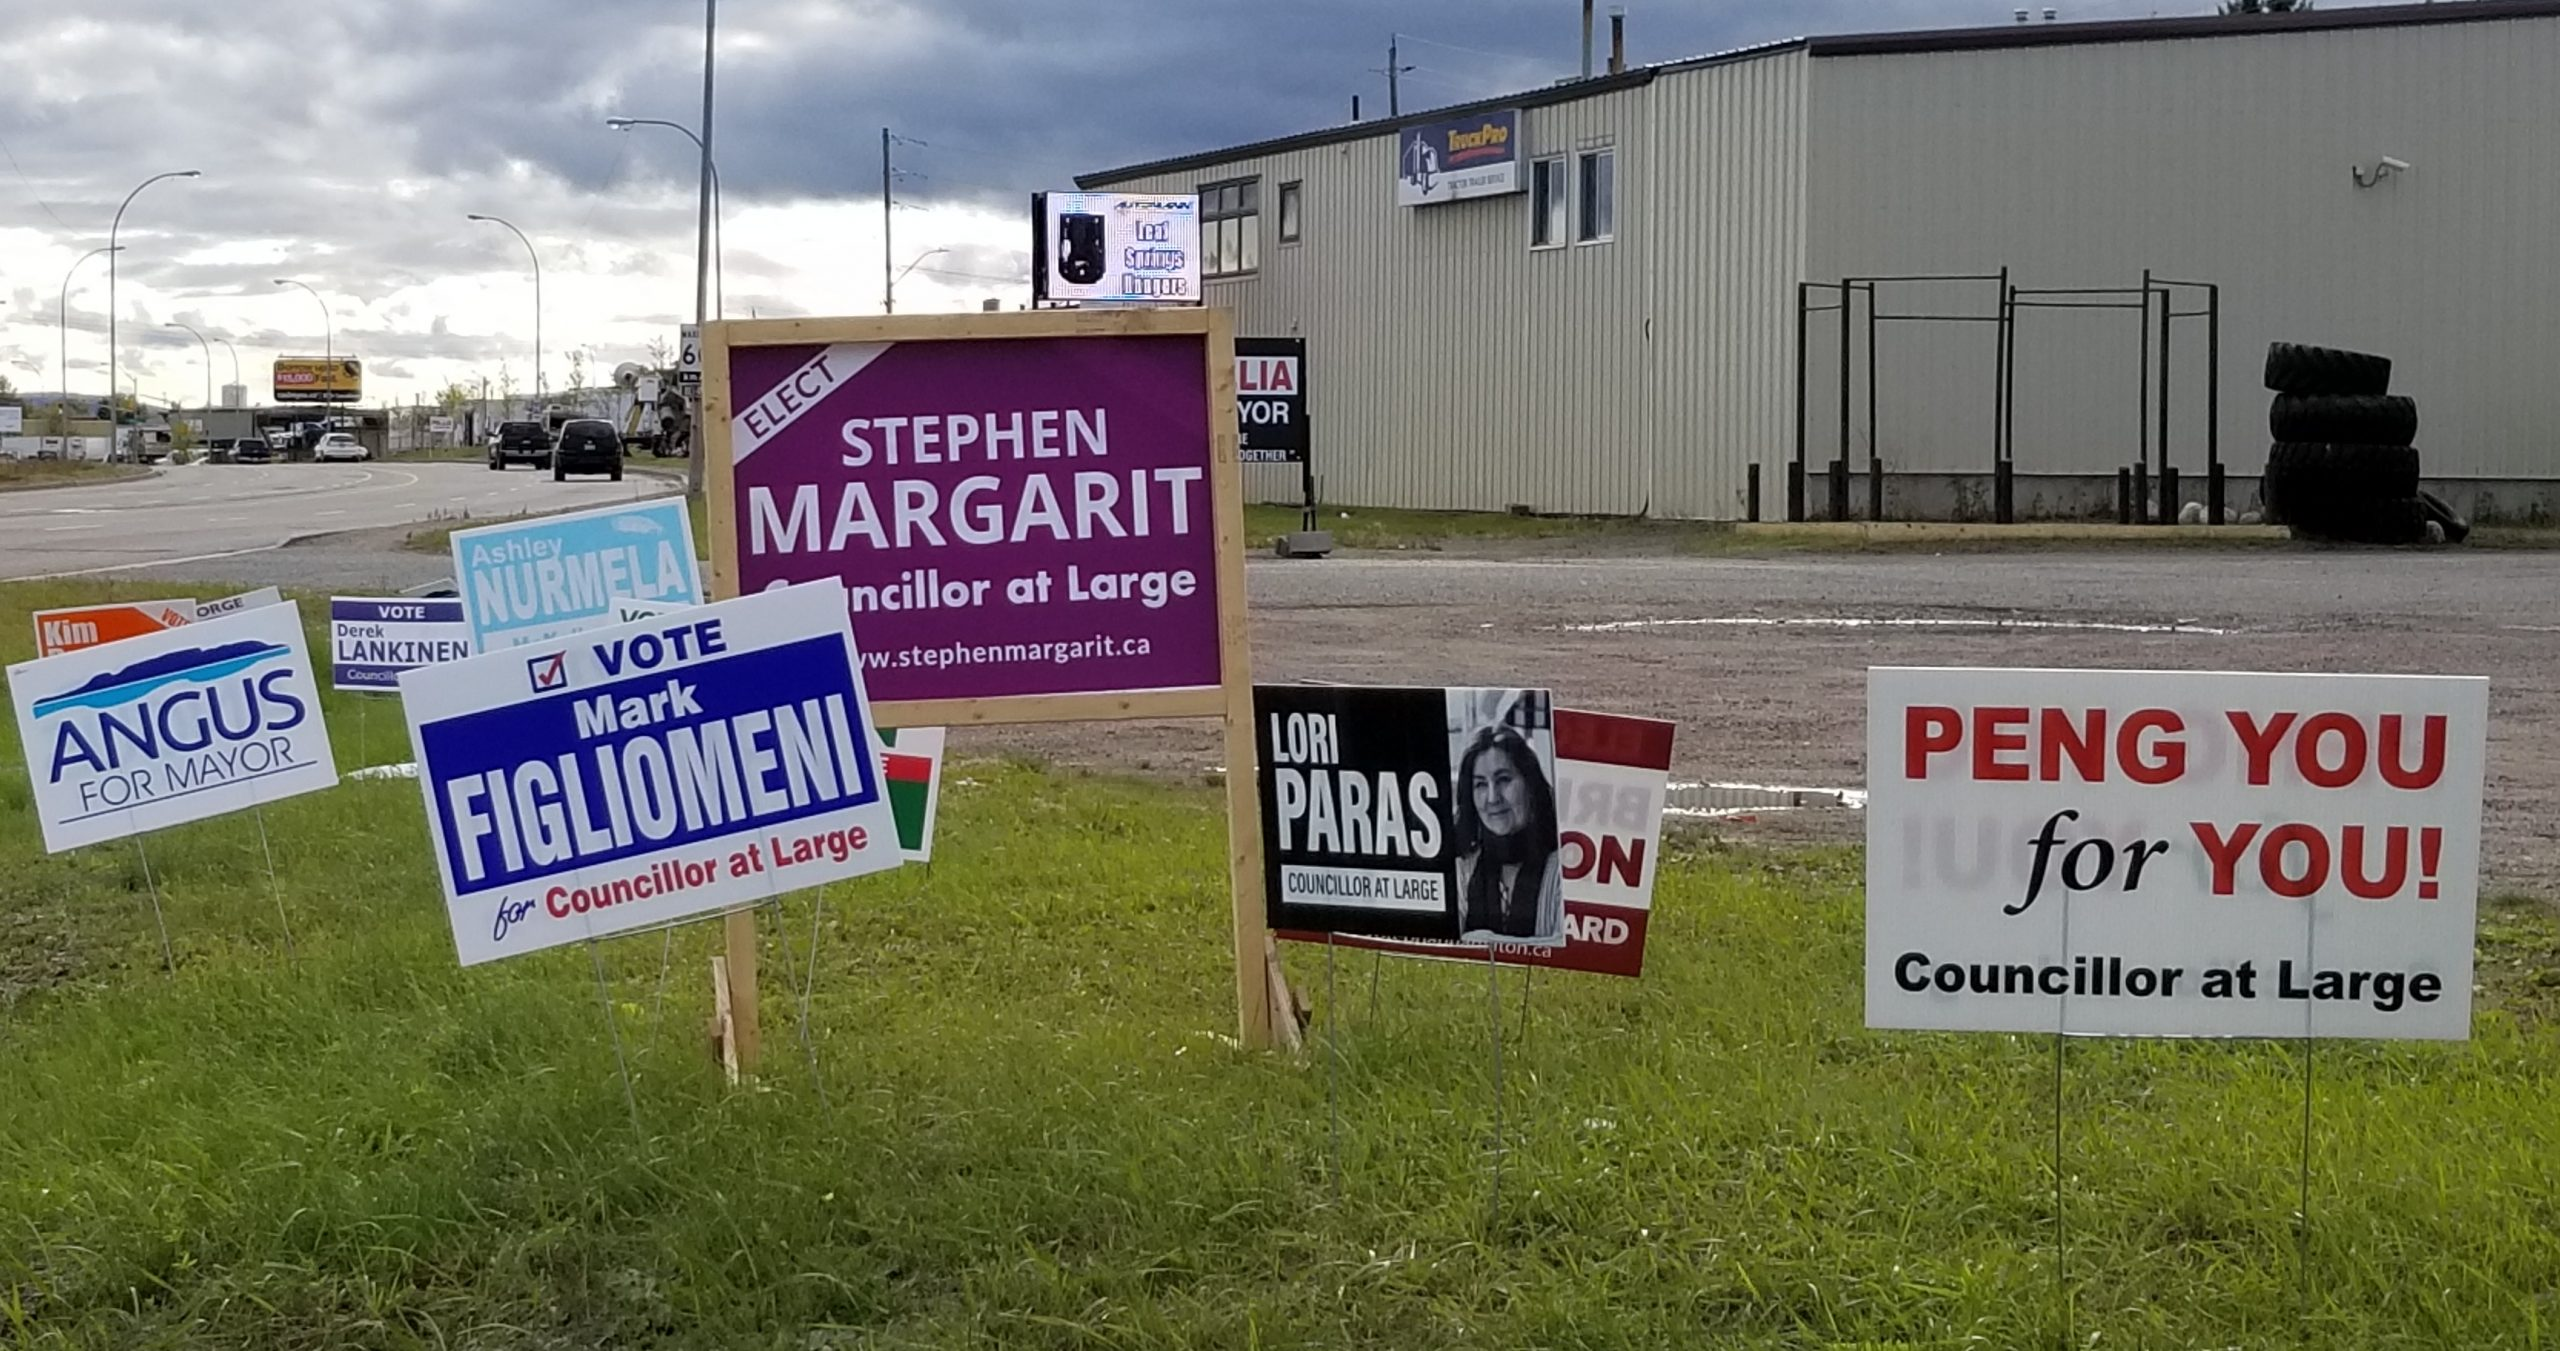 No Concerns With Election Signs: City